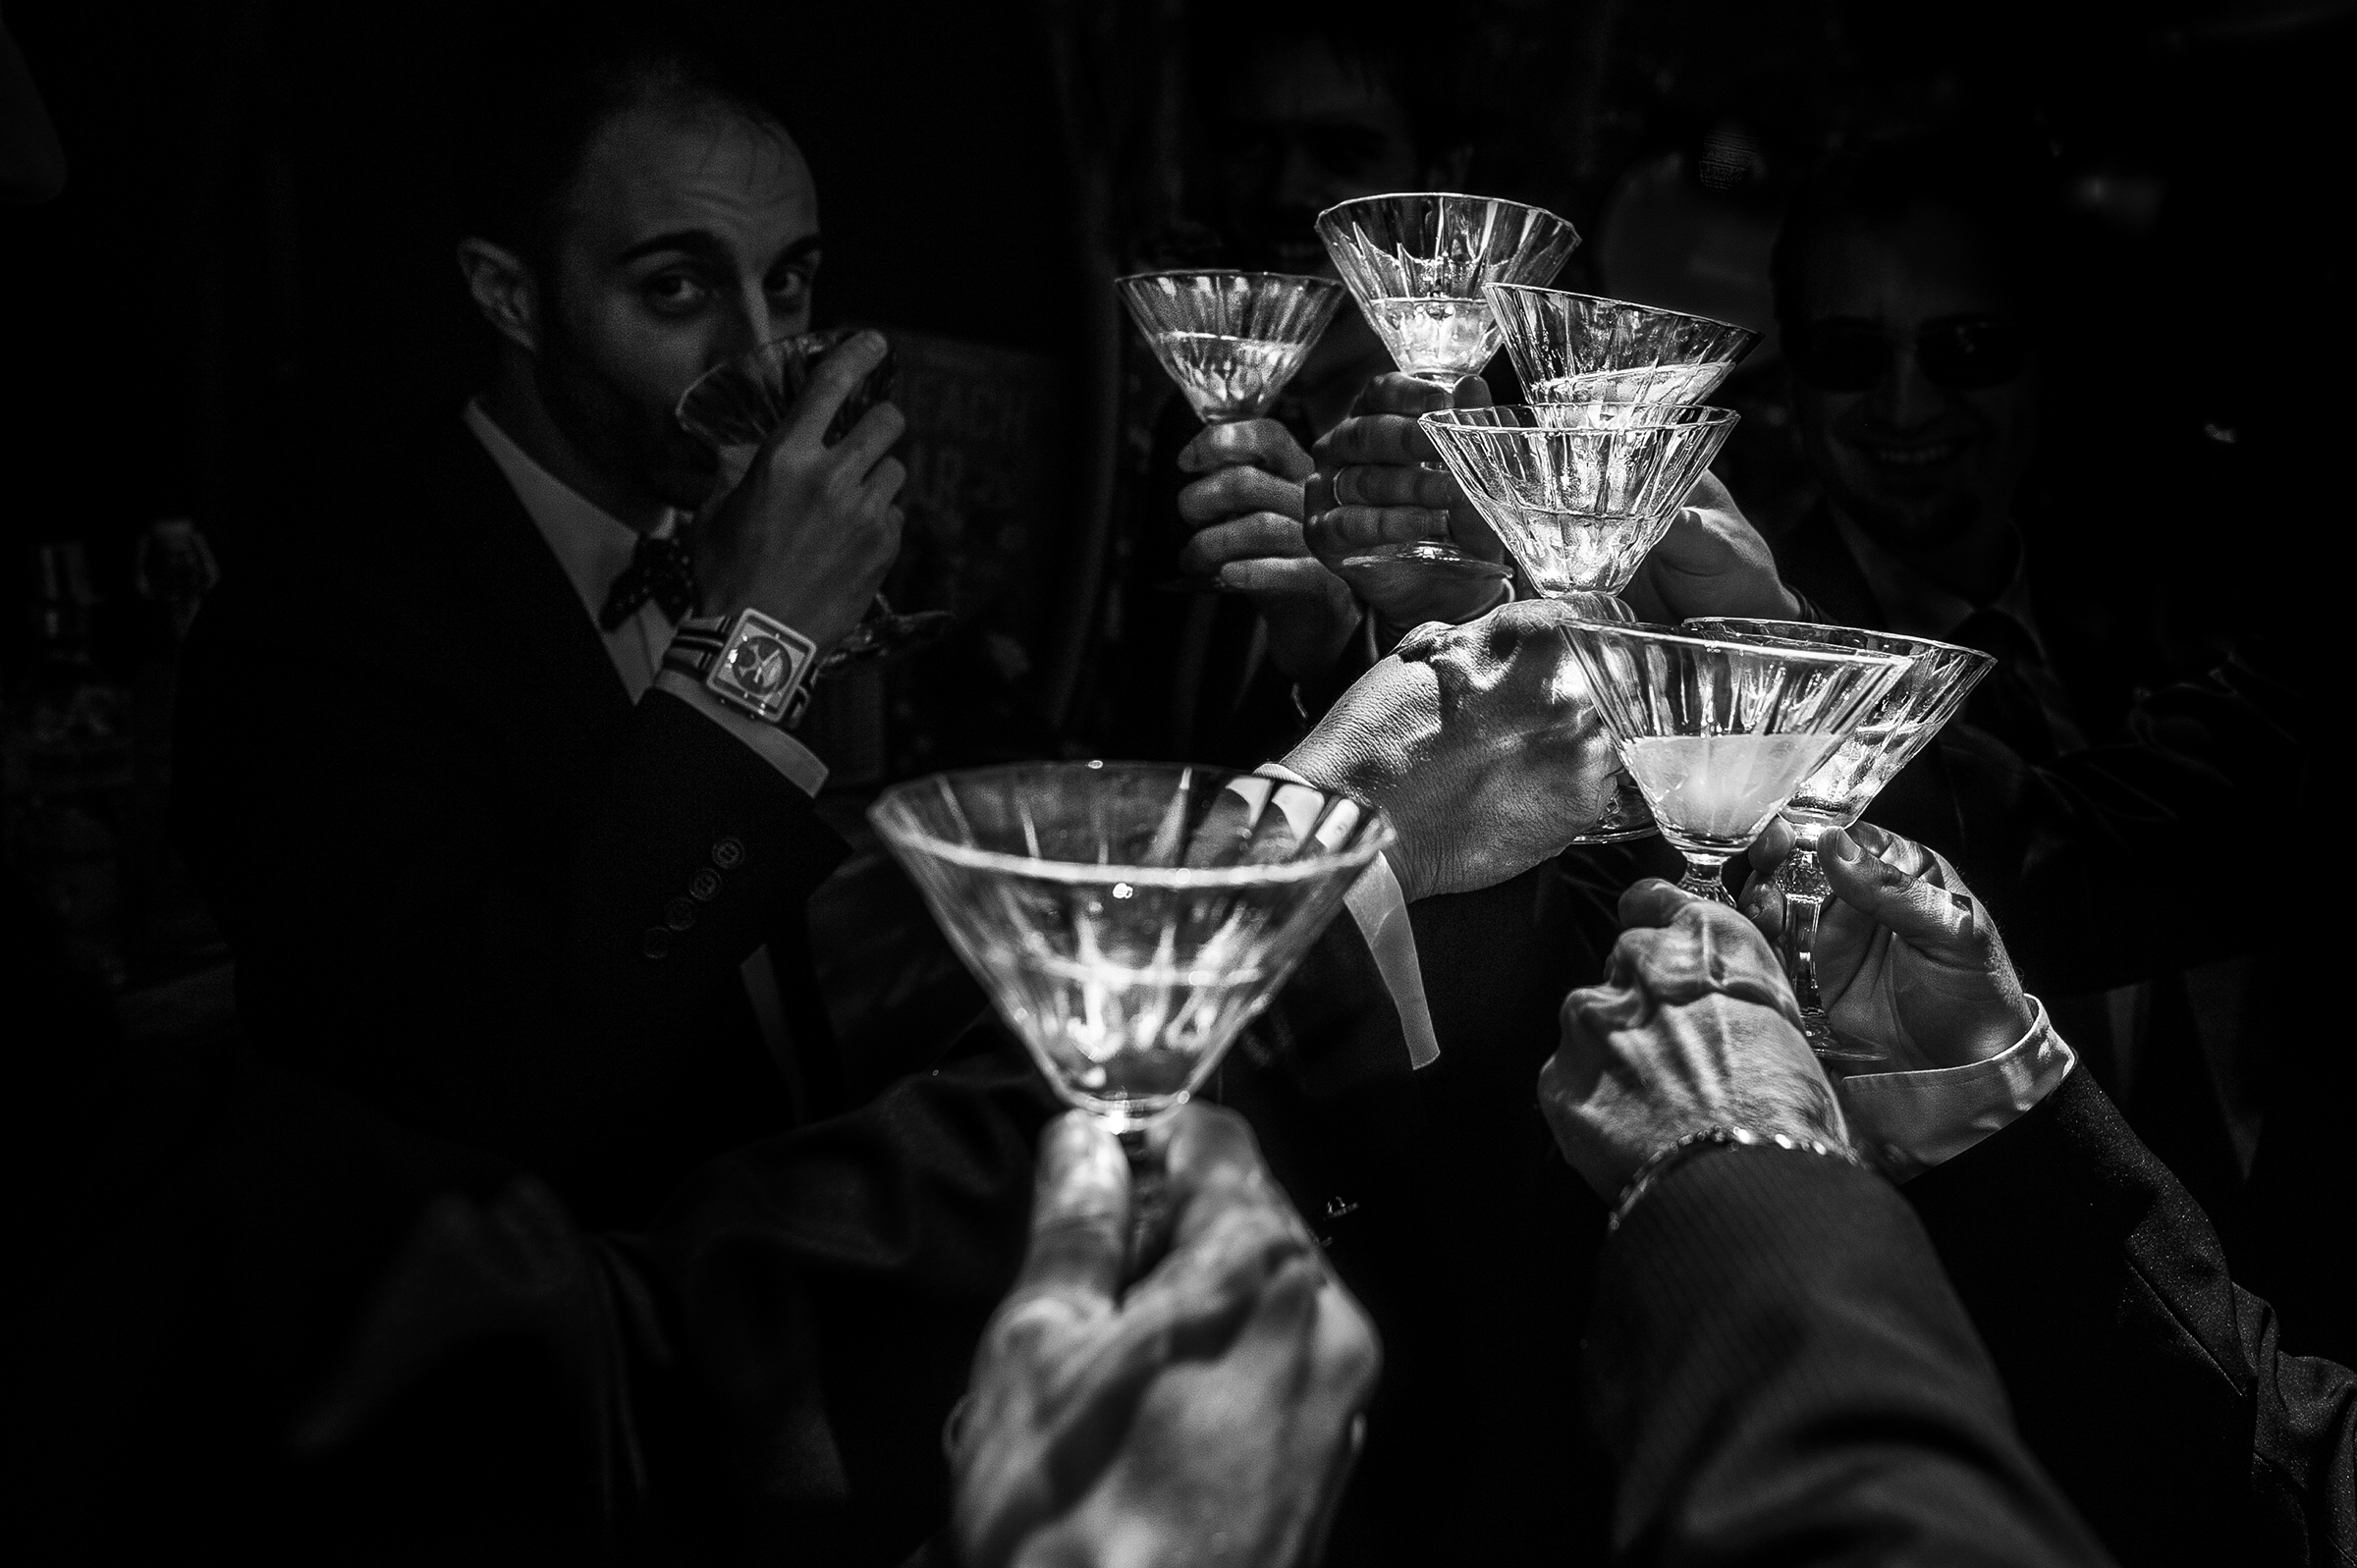 50 best wedding photo concepts - wedding toast by Lax Photography - Spain